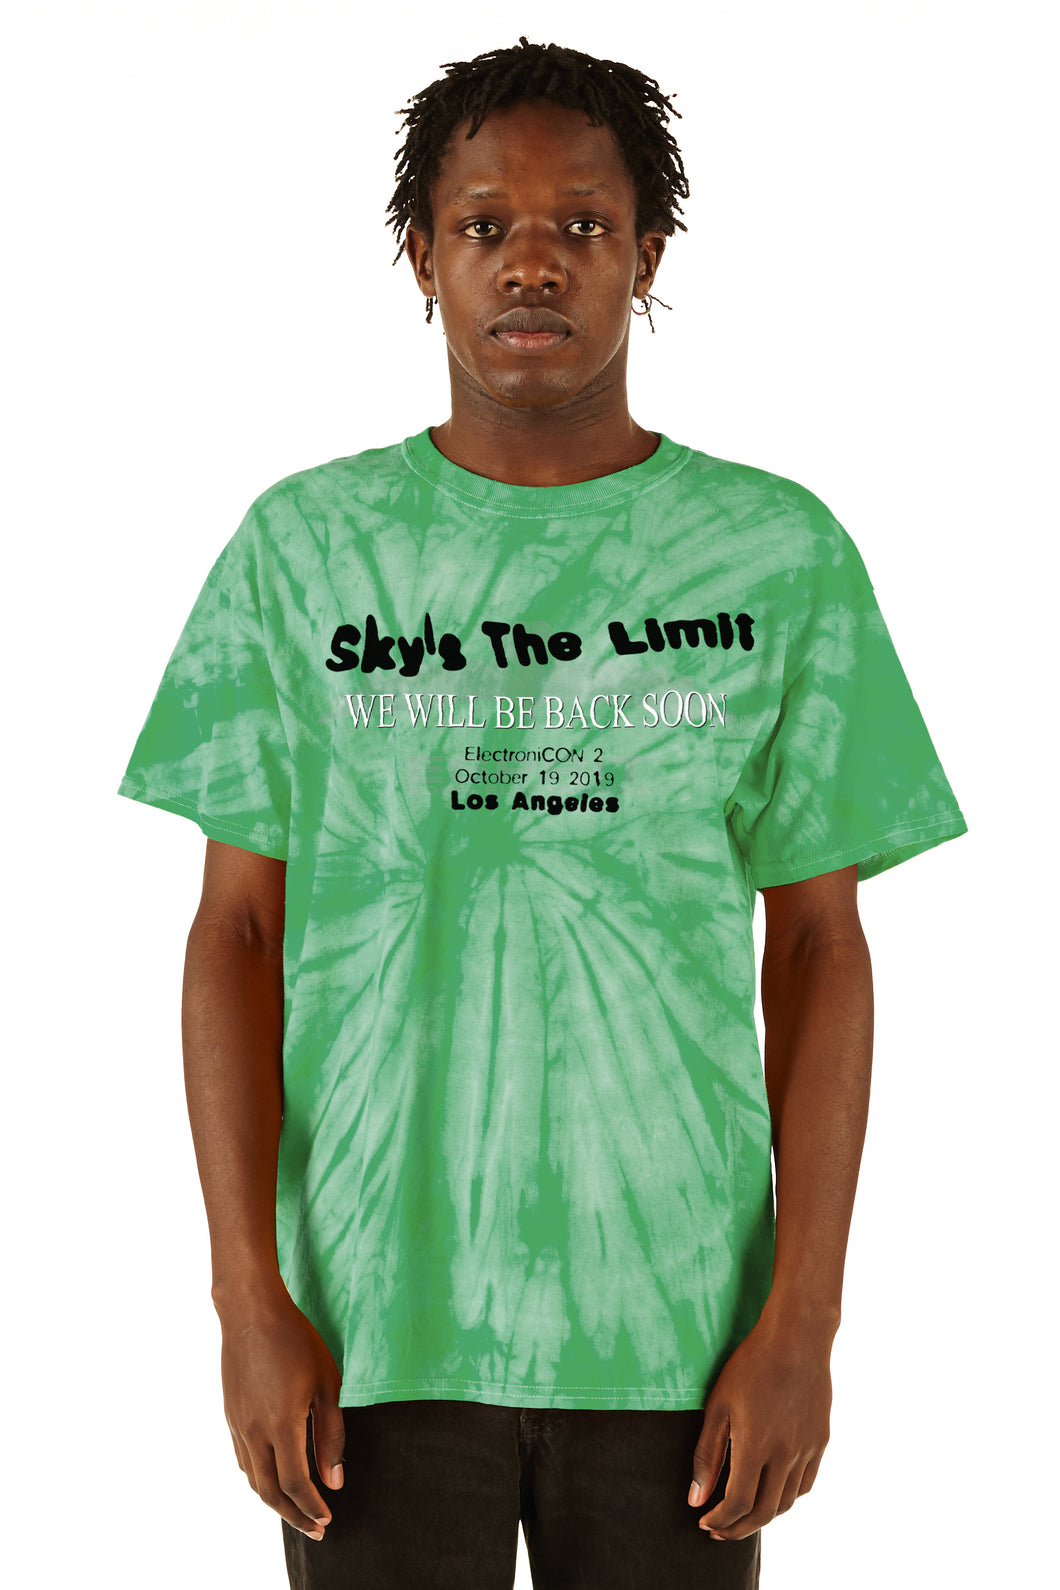 100% ElectroniCON 2 Sky's The Limit Tee